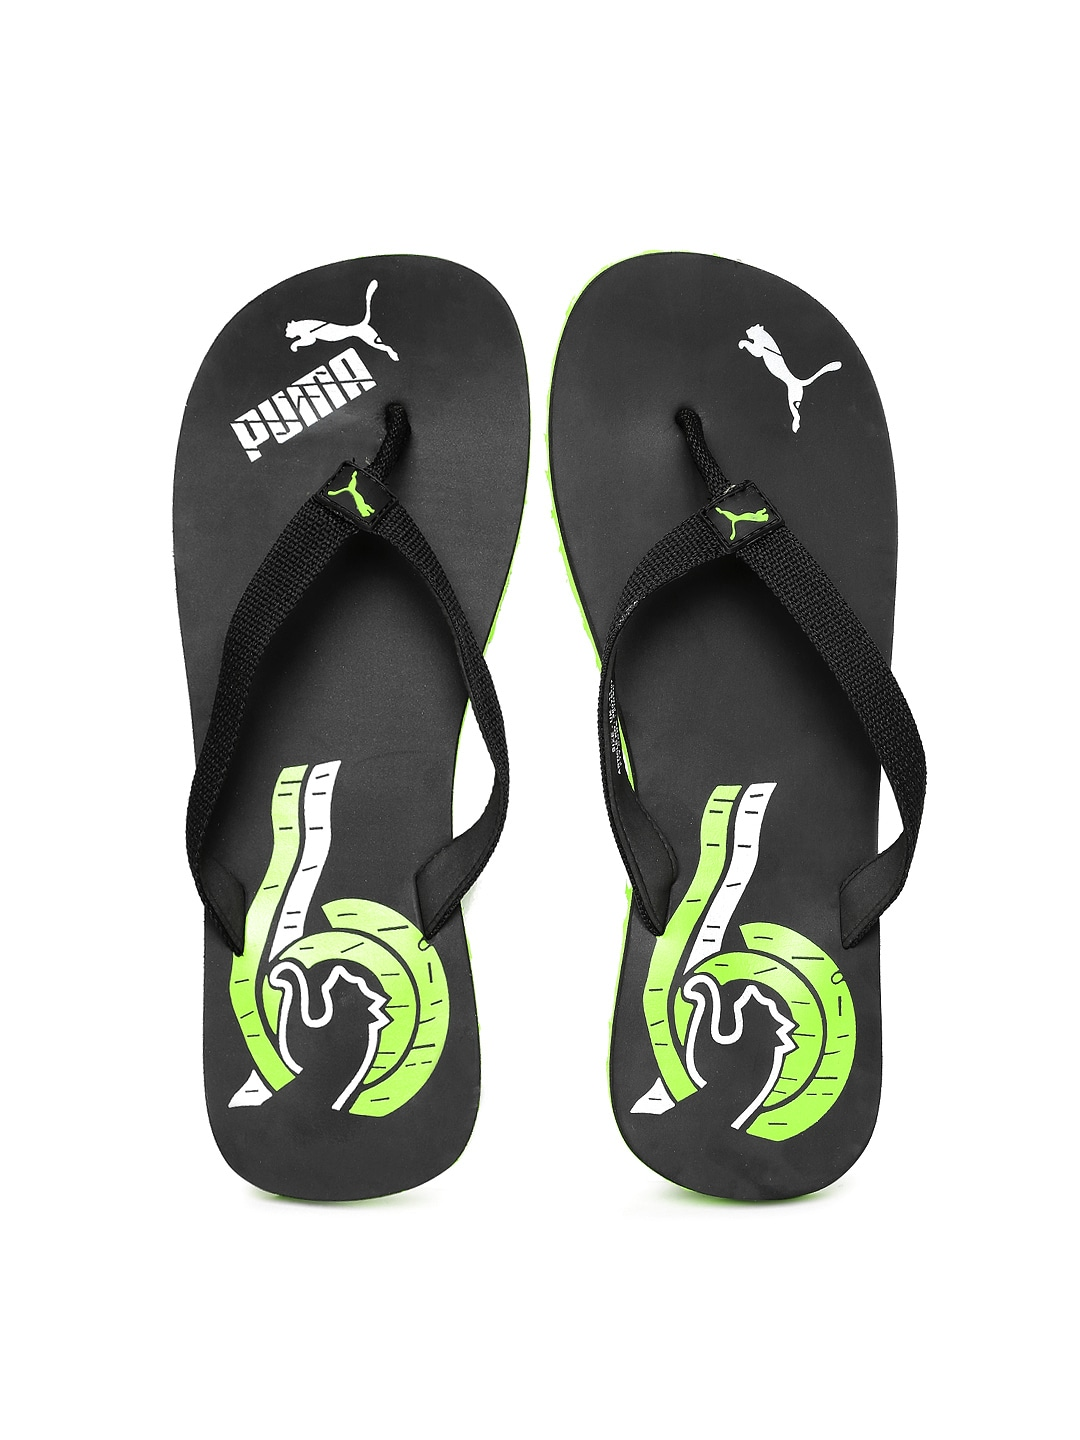 Puma Sandals Men Footwear - Buy Puma Sandals Men Footwear online in India aa8e3e471